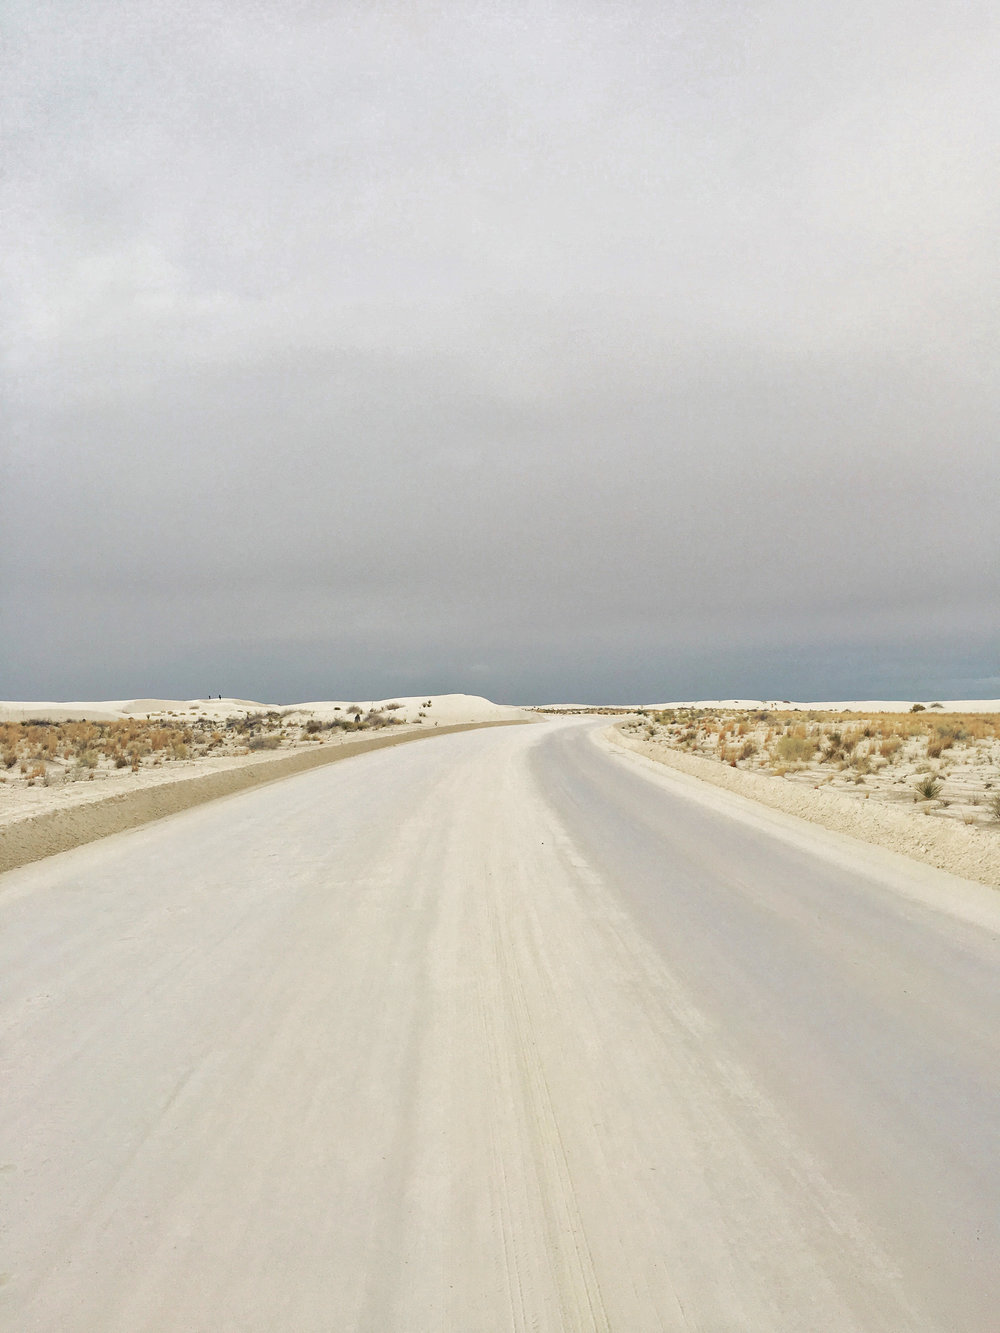 white sands national monument road